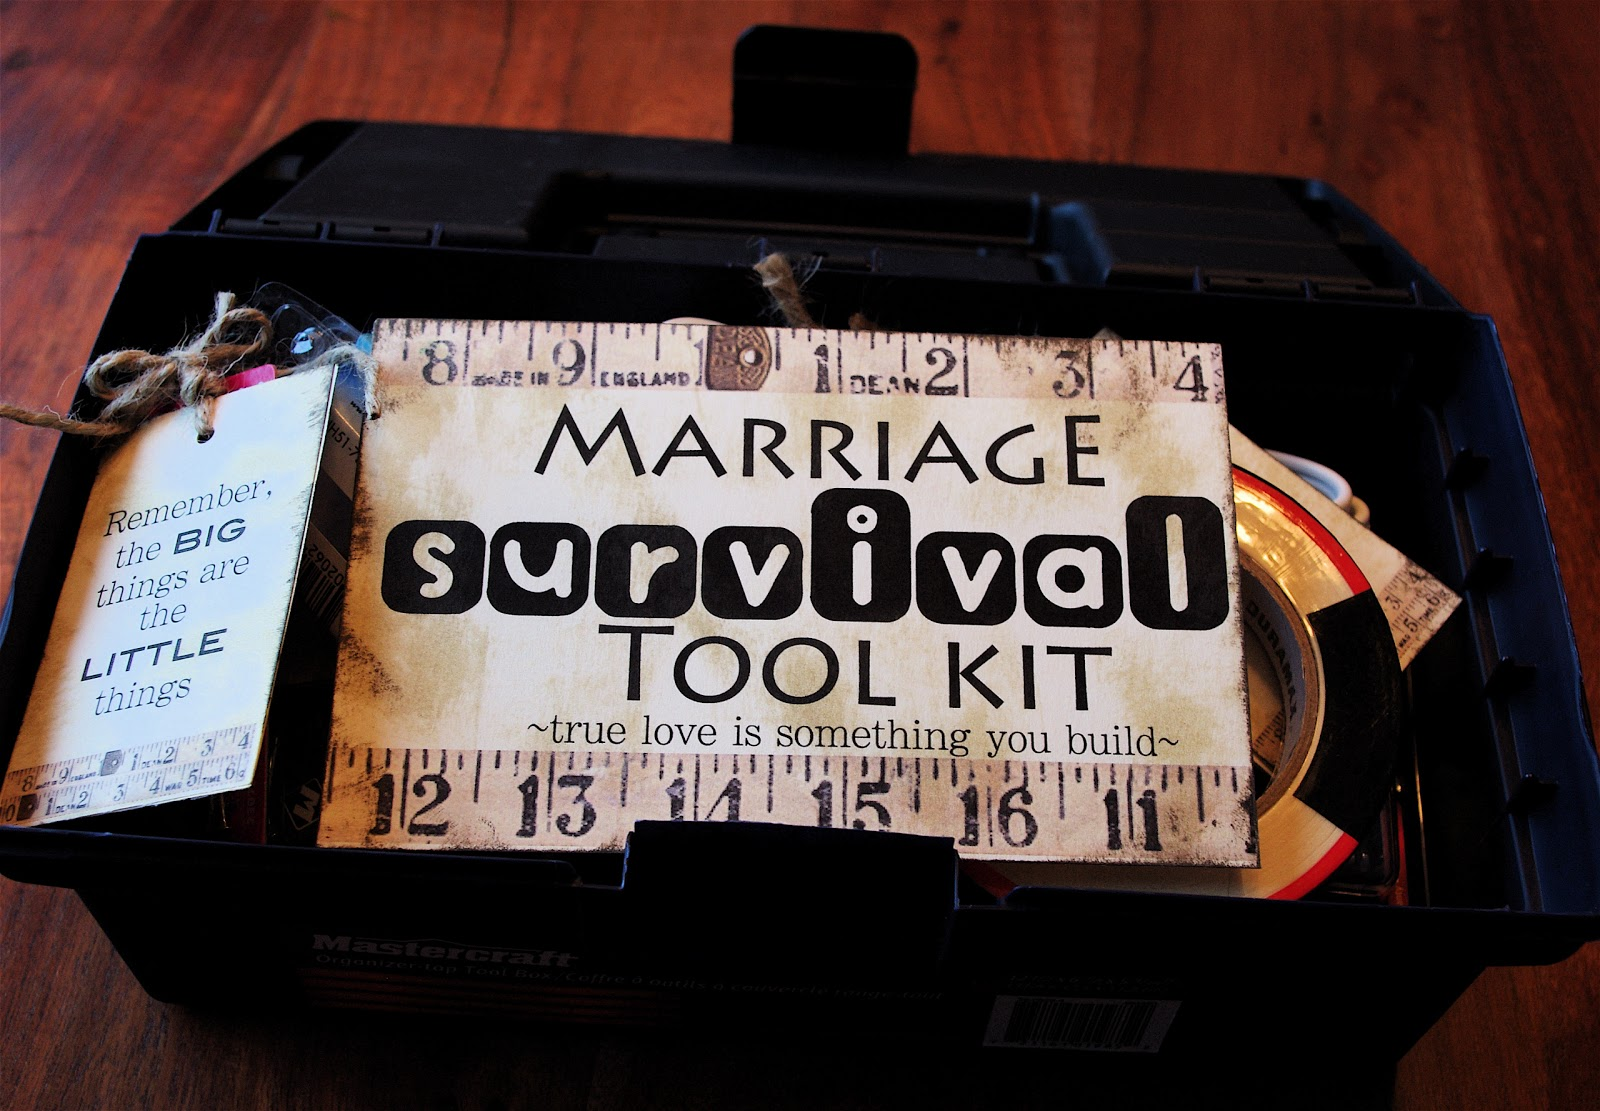 A Wedding Gift For Someone That Has Everything Suggestions : ... marriage survival tool kit together this was for a wedding gift but